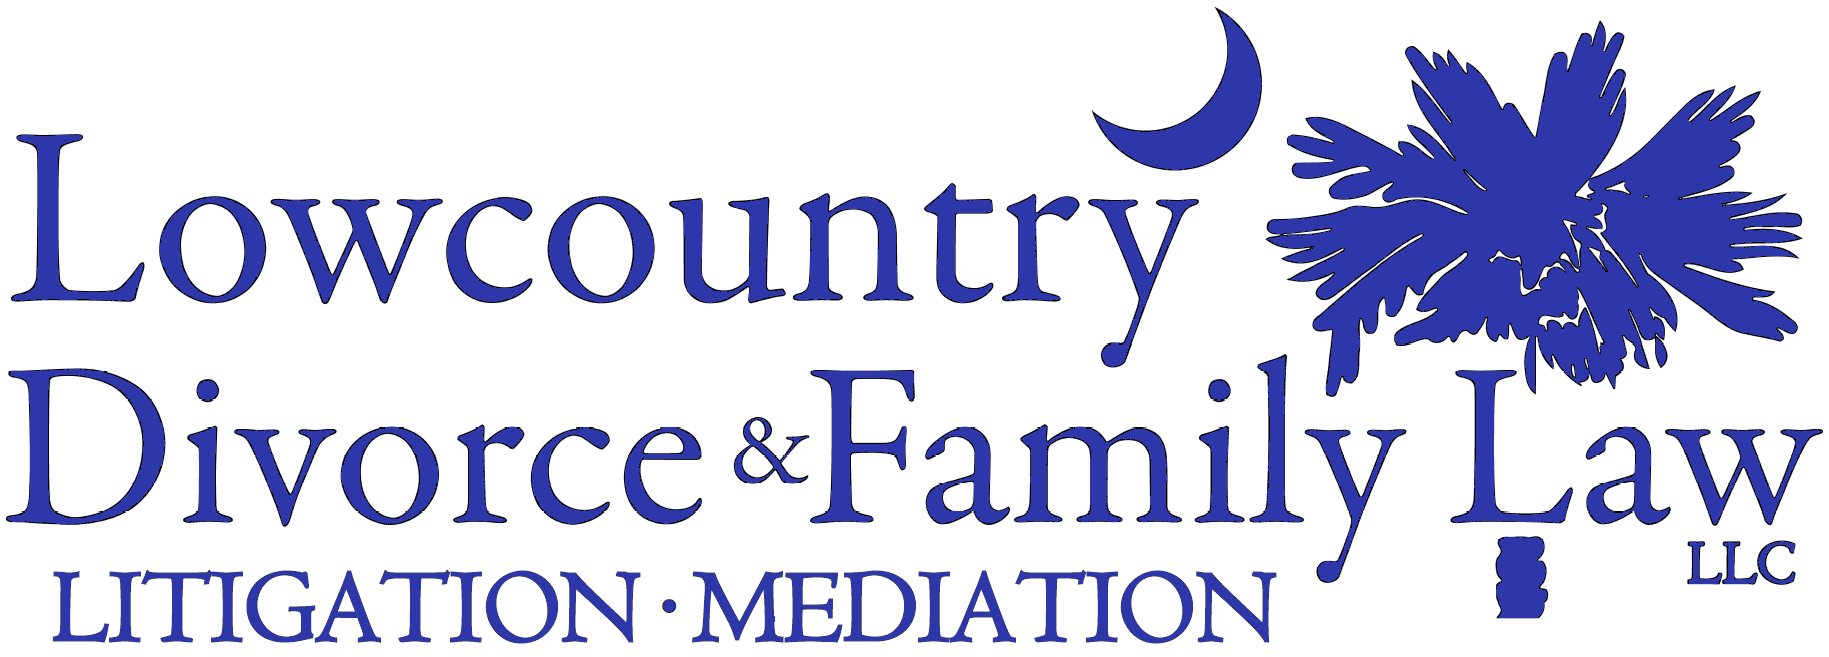 Lowcountry Divorce & Family Law, LLC